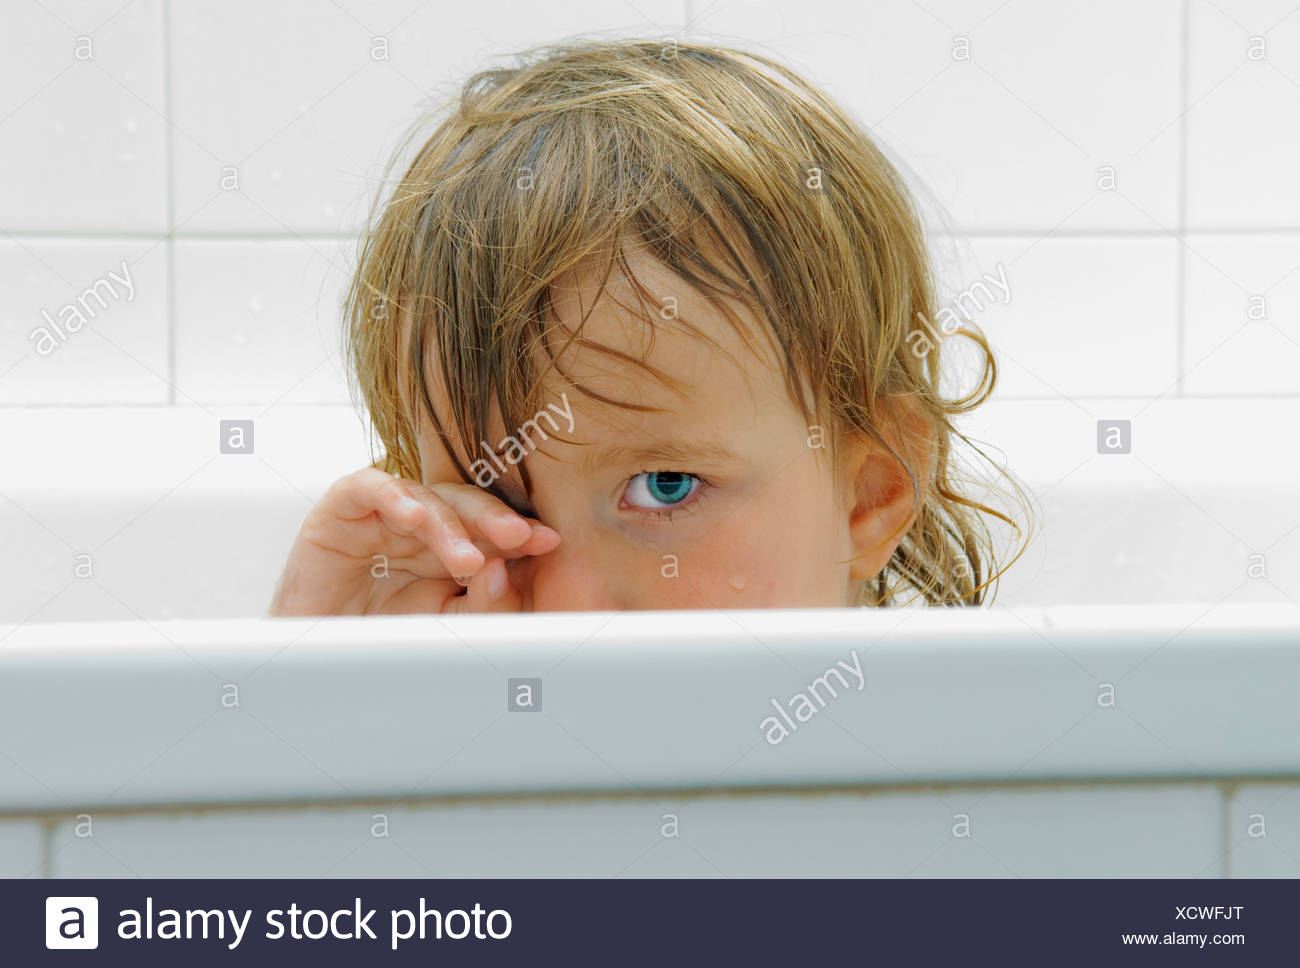 Child In Bath Tub - Stock Image